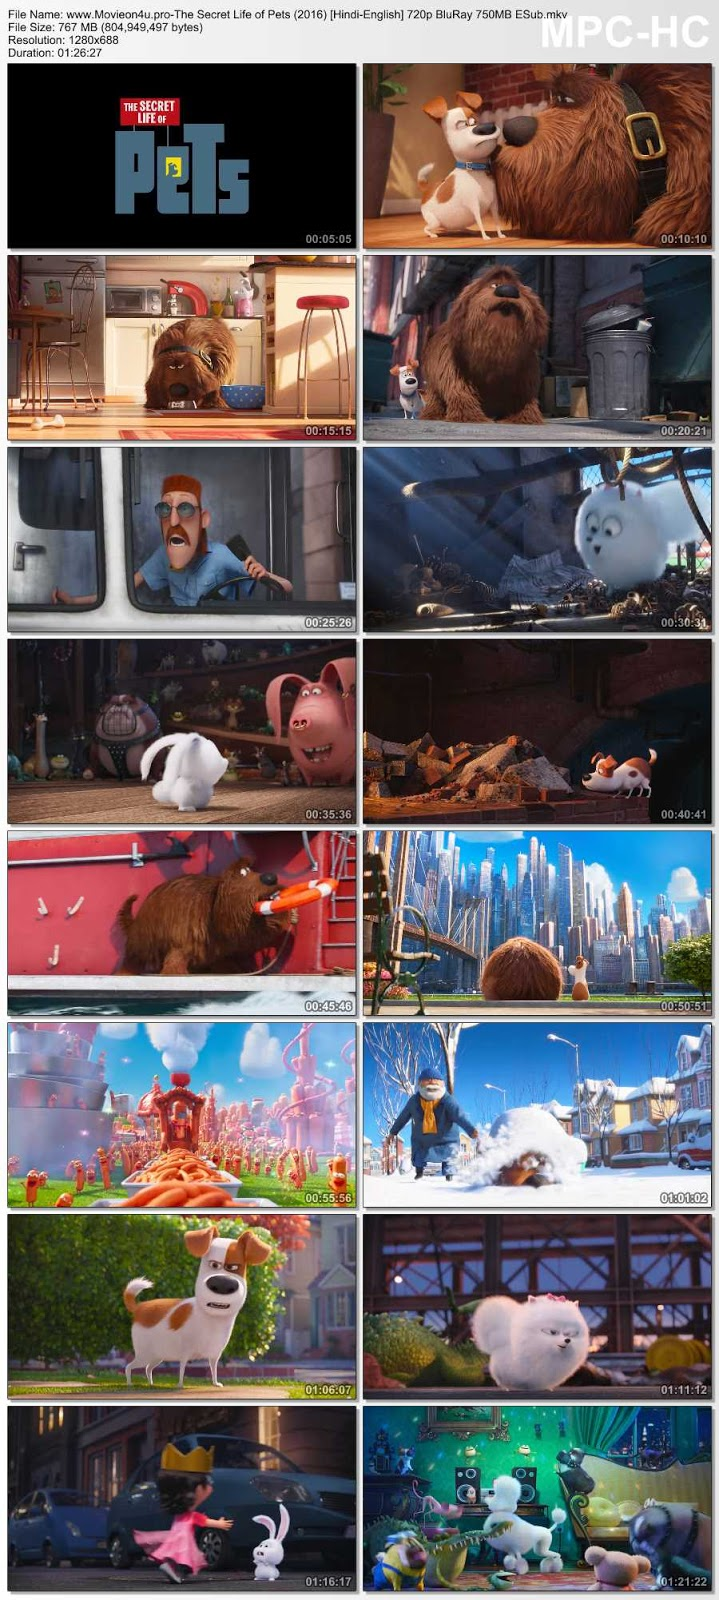 >The Secret Life of Pets (2016) 720p Dual Audio In [Hindi English]